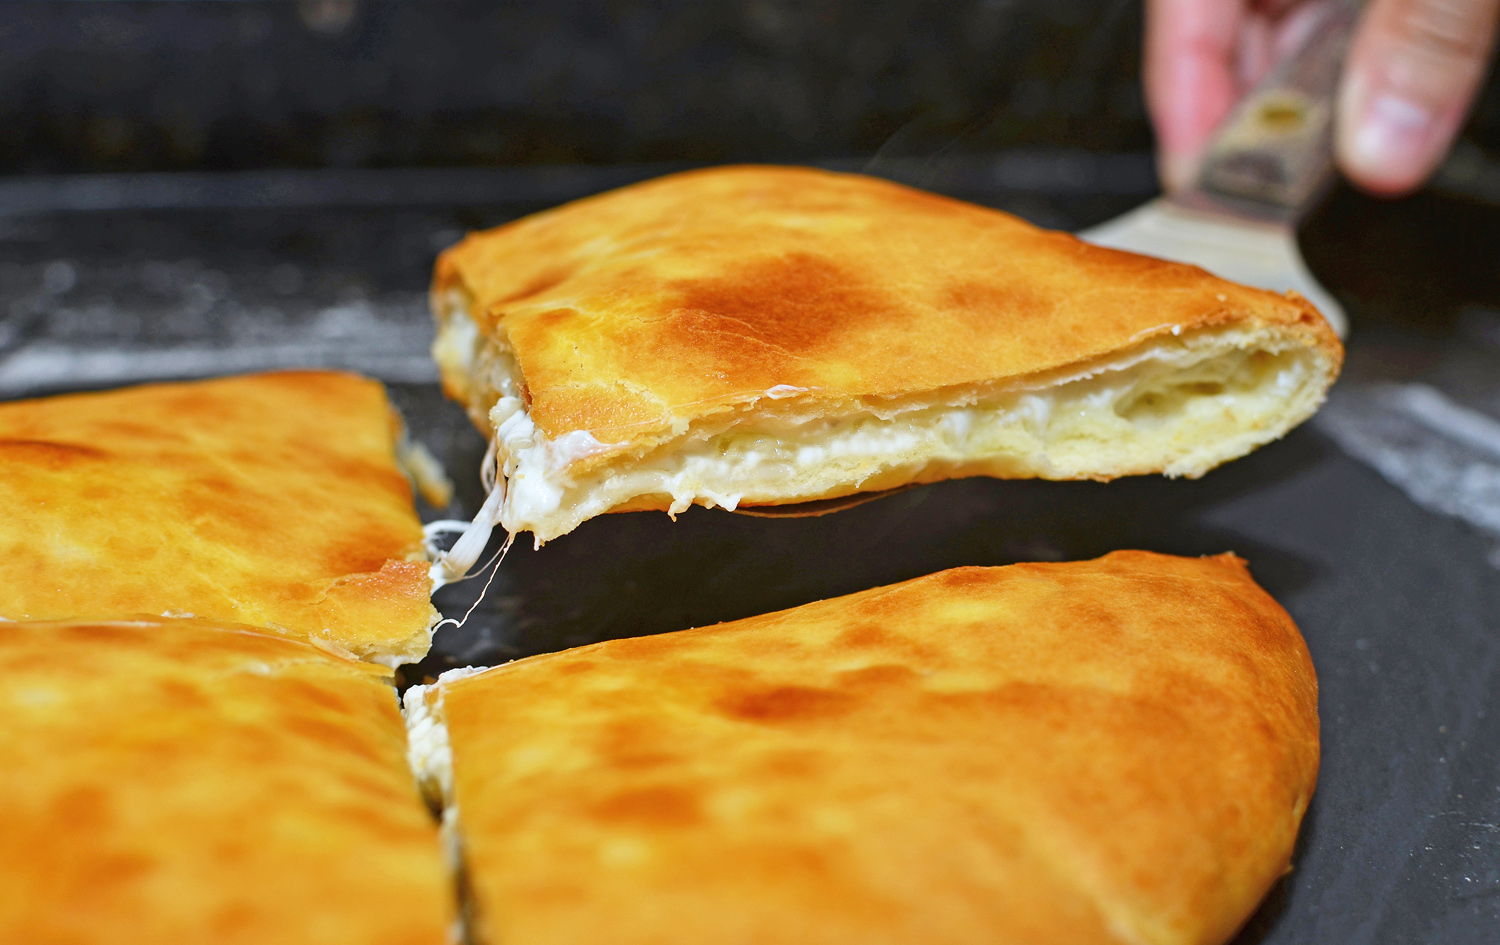 Georgian Food - Imeretian Khachapuri